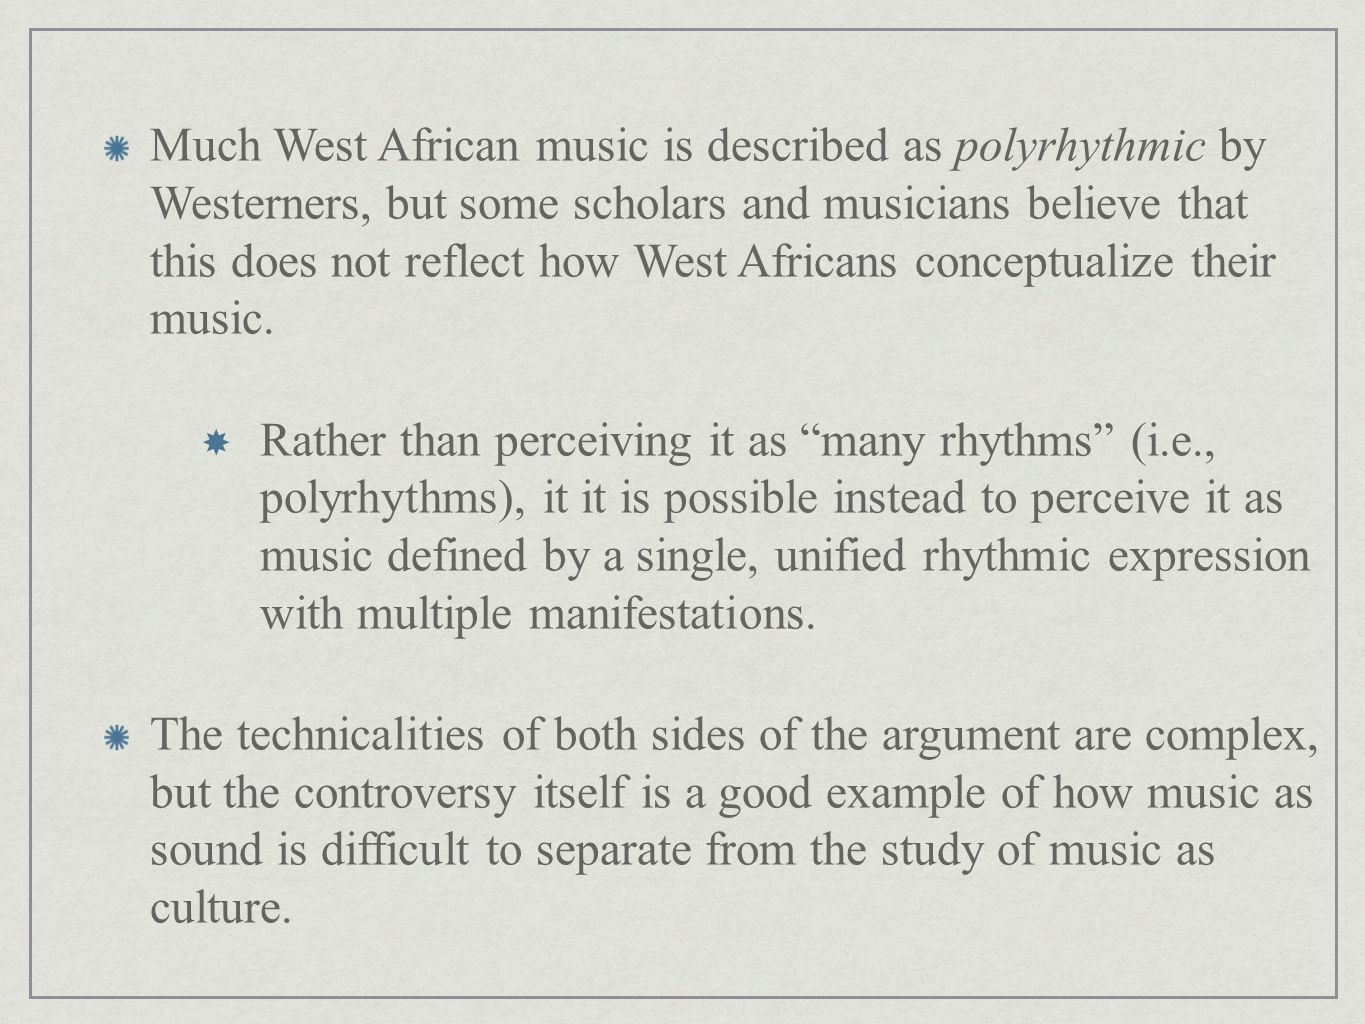 Much West African music is described as polyrhythmic by Westerners, but some scholars and musicians believe that this does not reflect how West Africans conceptualize their music.